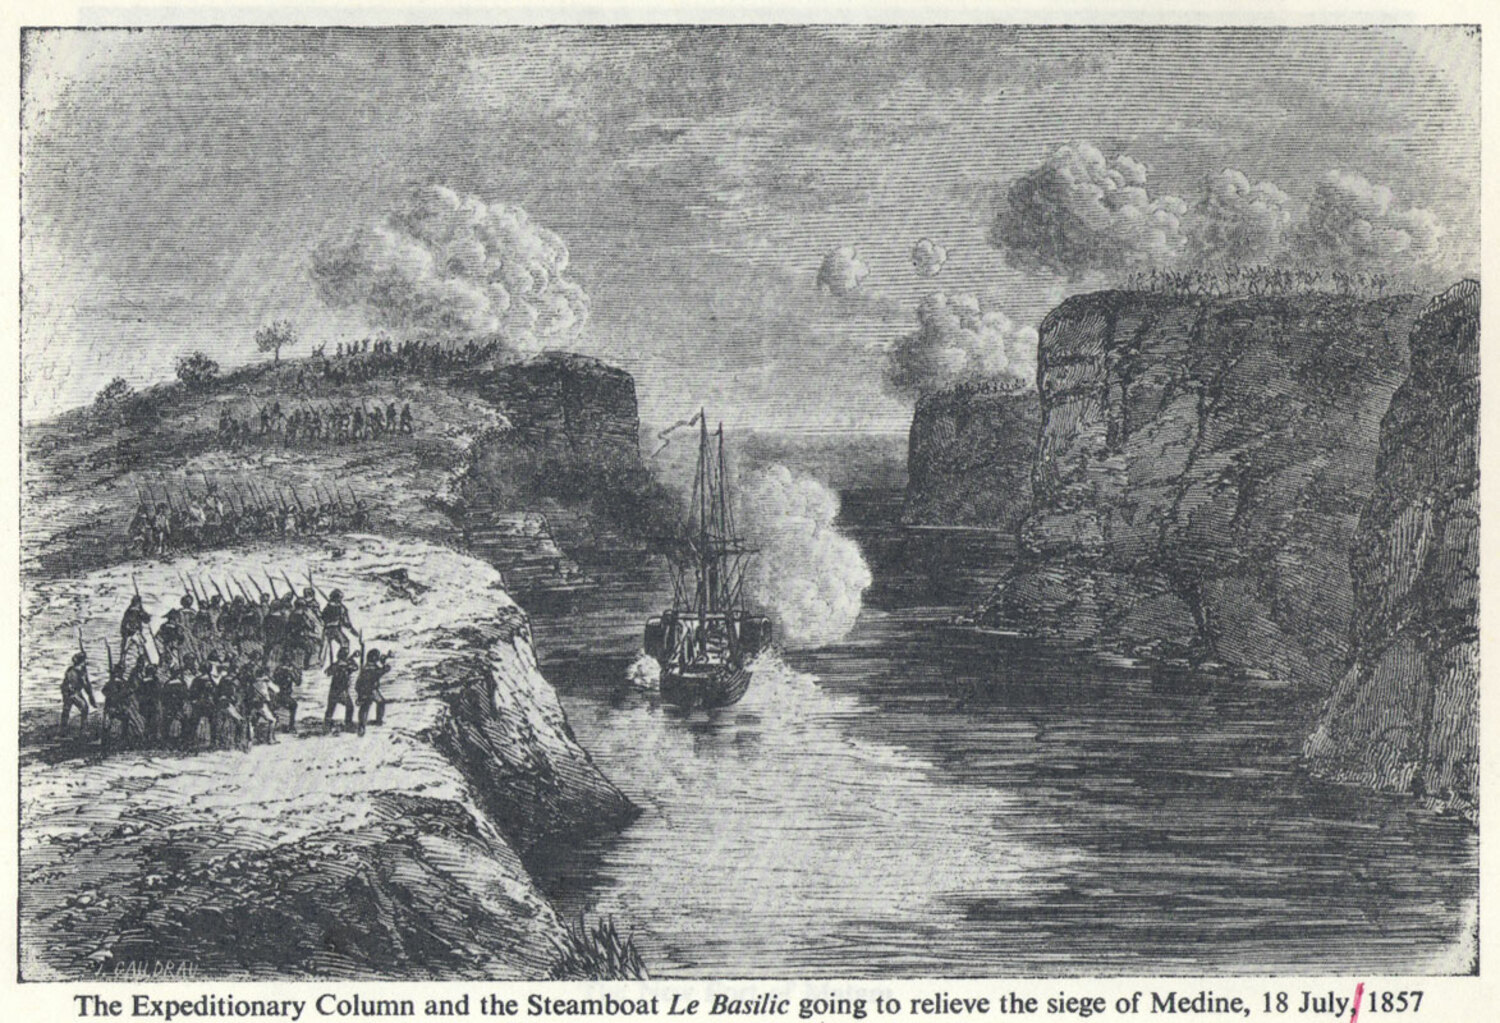 Boats rushing to rescue Medine